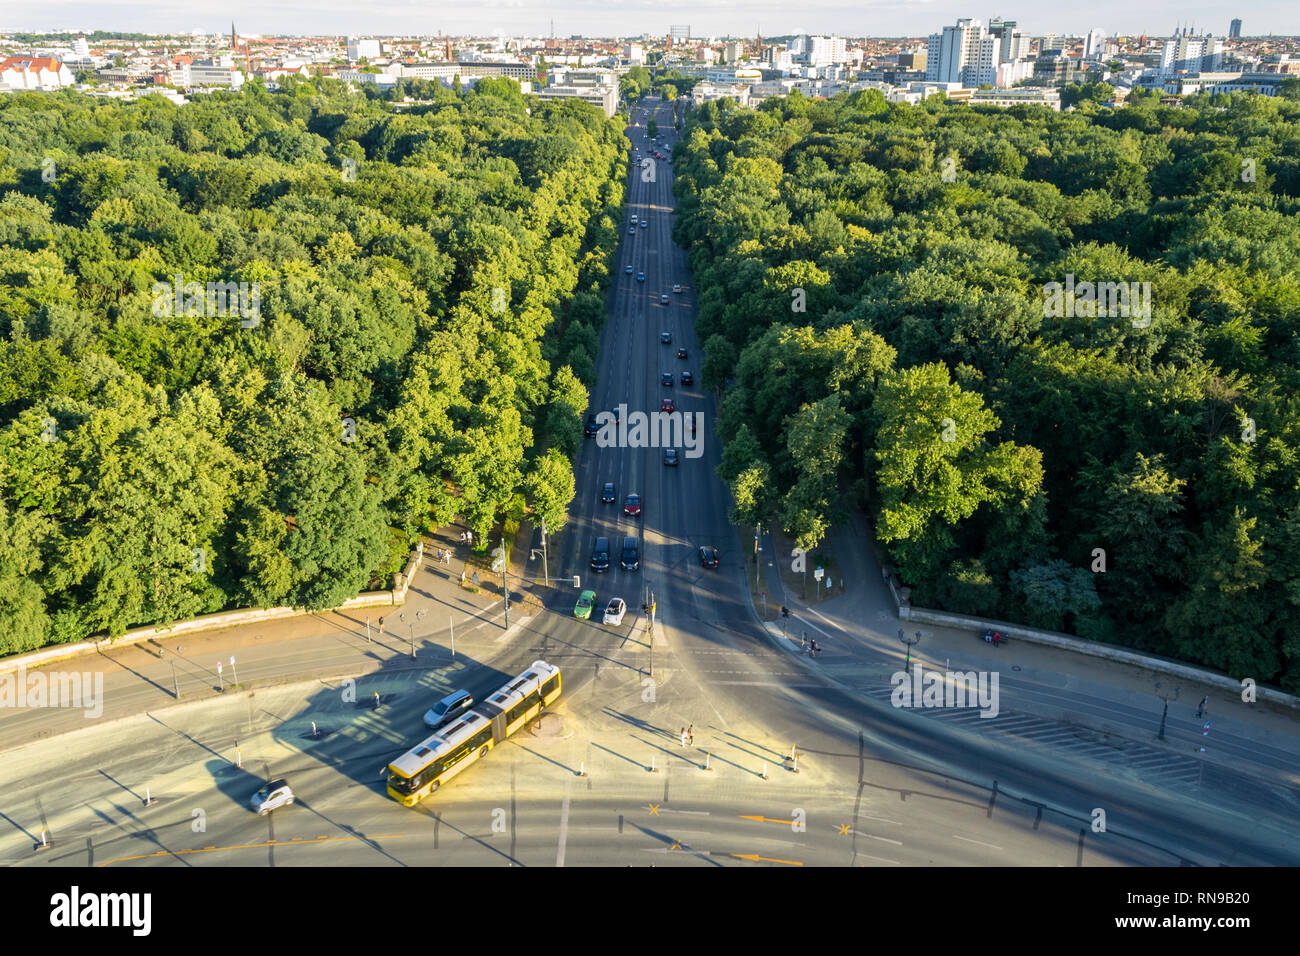 Aerial view of Berlin, Germany, as seen from the Victory Column  (Siegessäule) tower, in a Summer afternoon. Großer Tiergarten park, long street in th - Stock Image